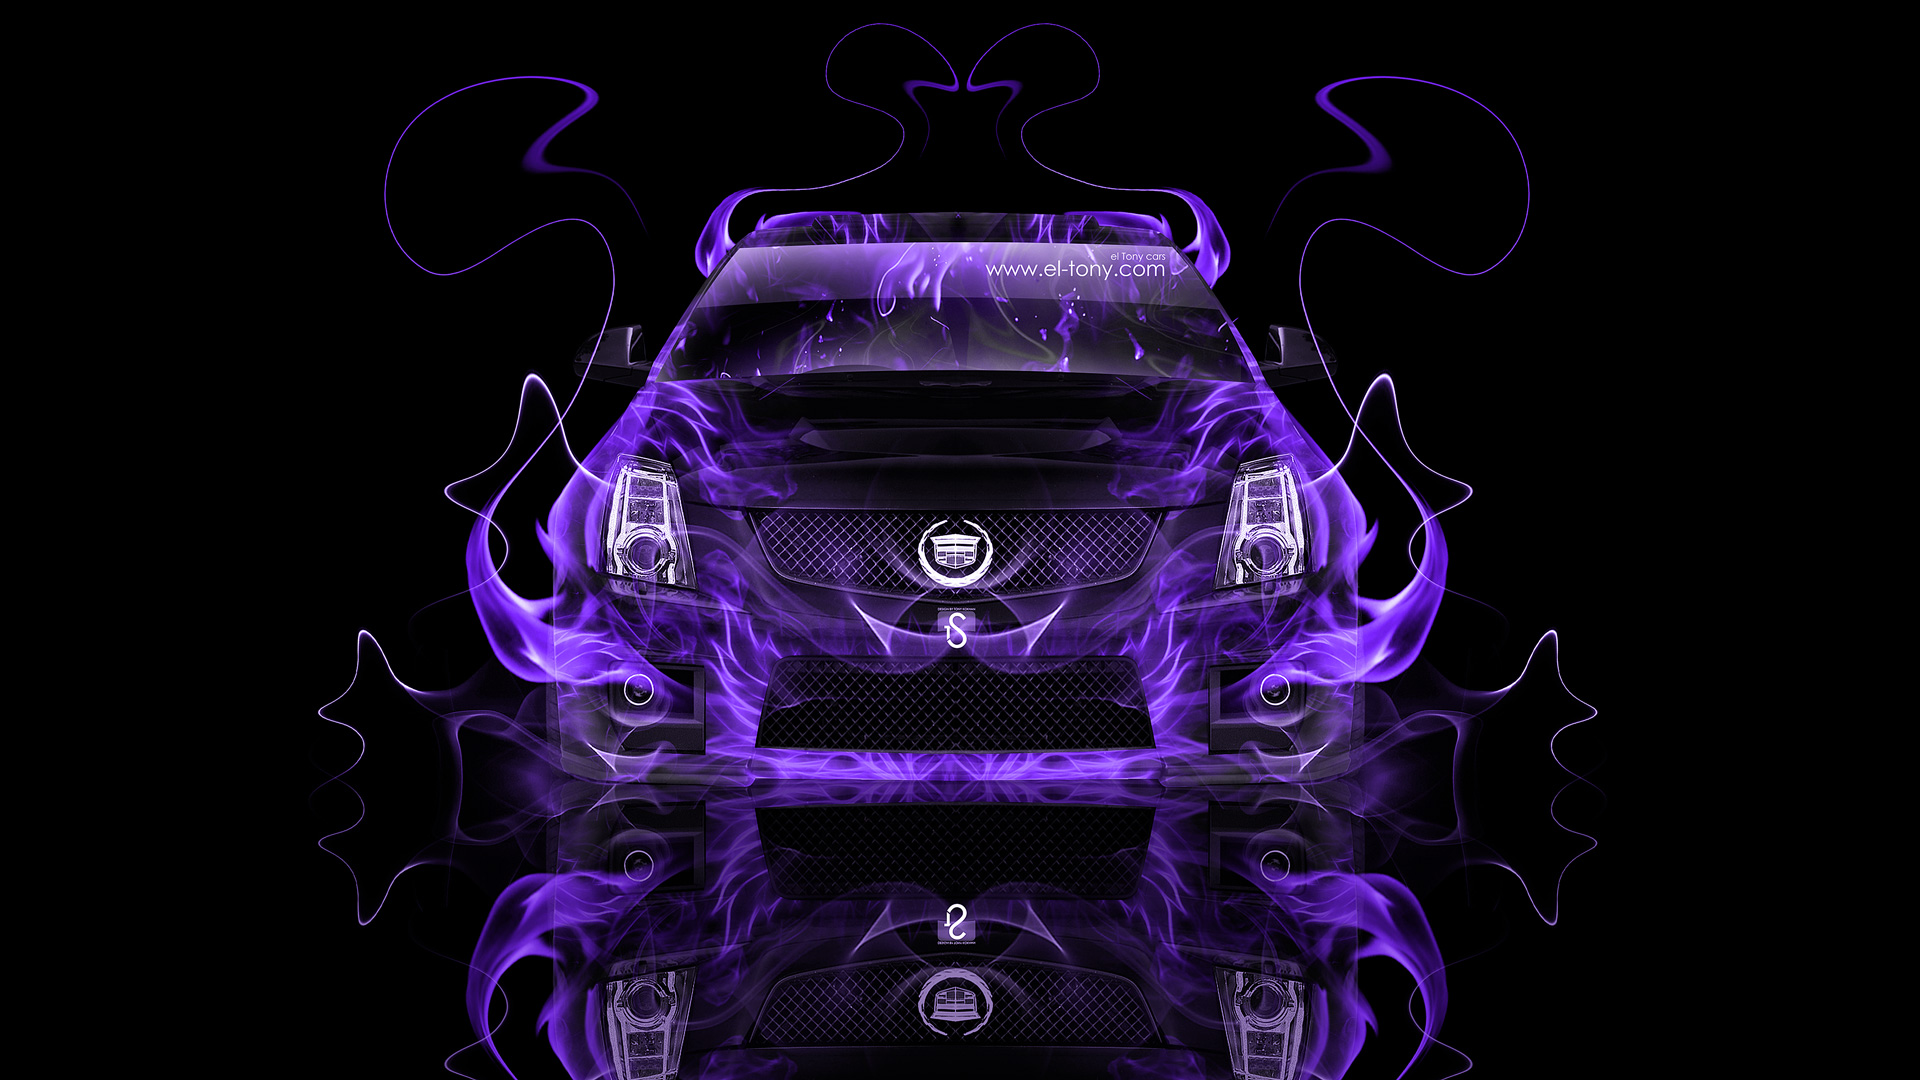 Cadillac Cts V Violet Fire Abstract Car 2014 Hd Wallpapers Design By